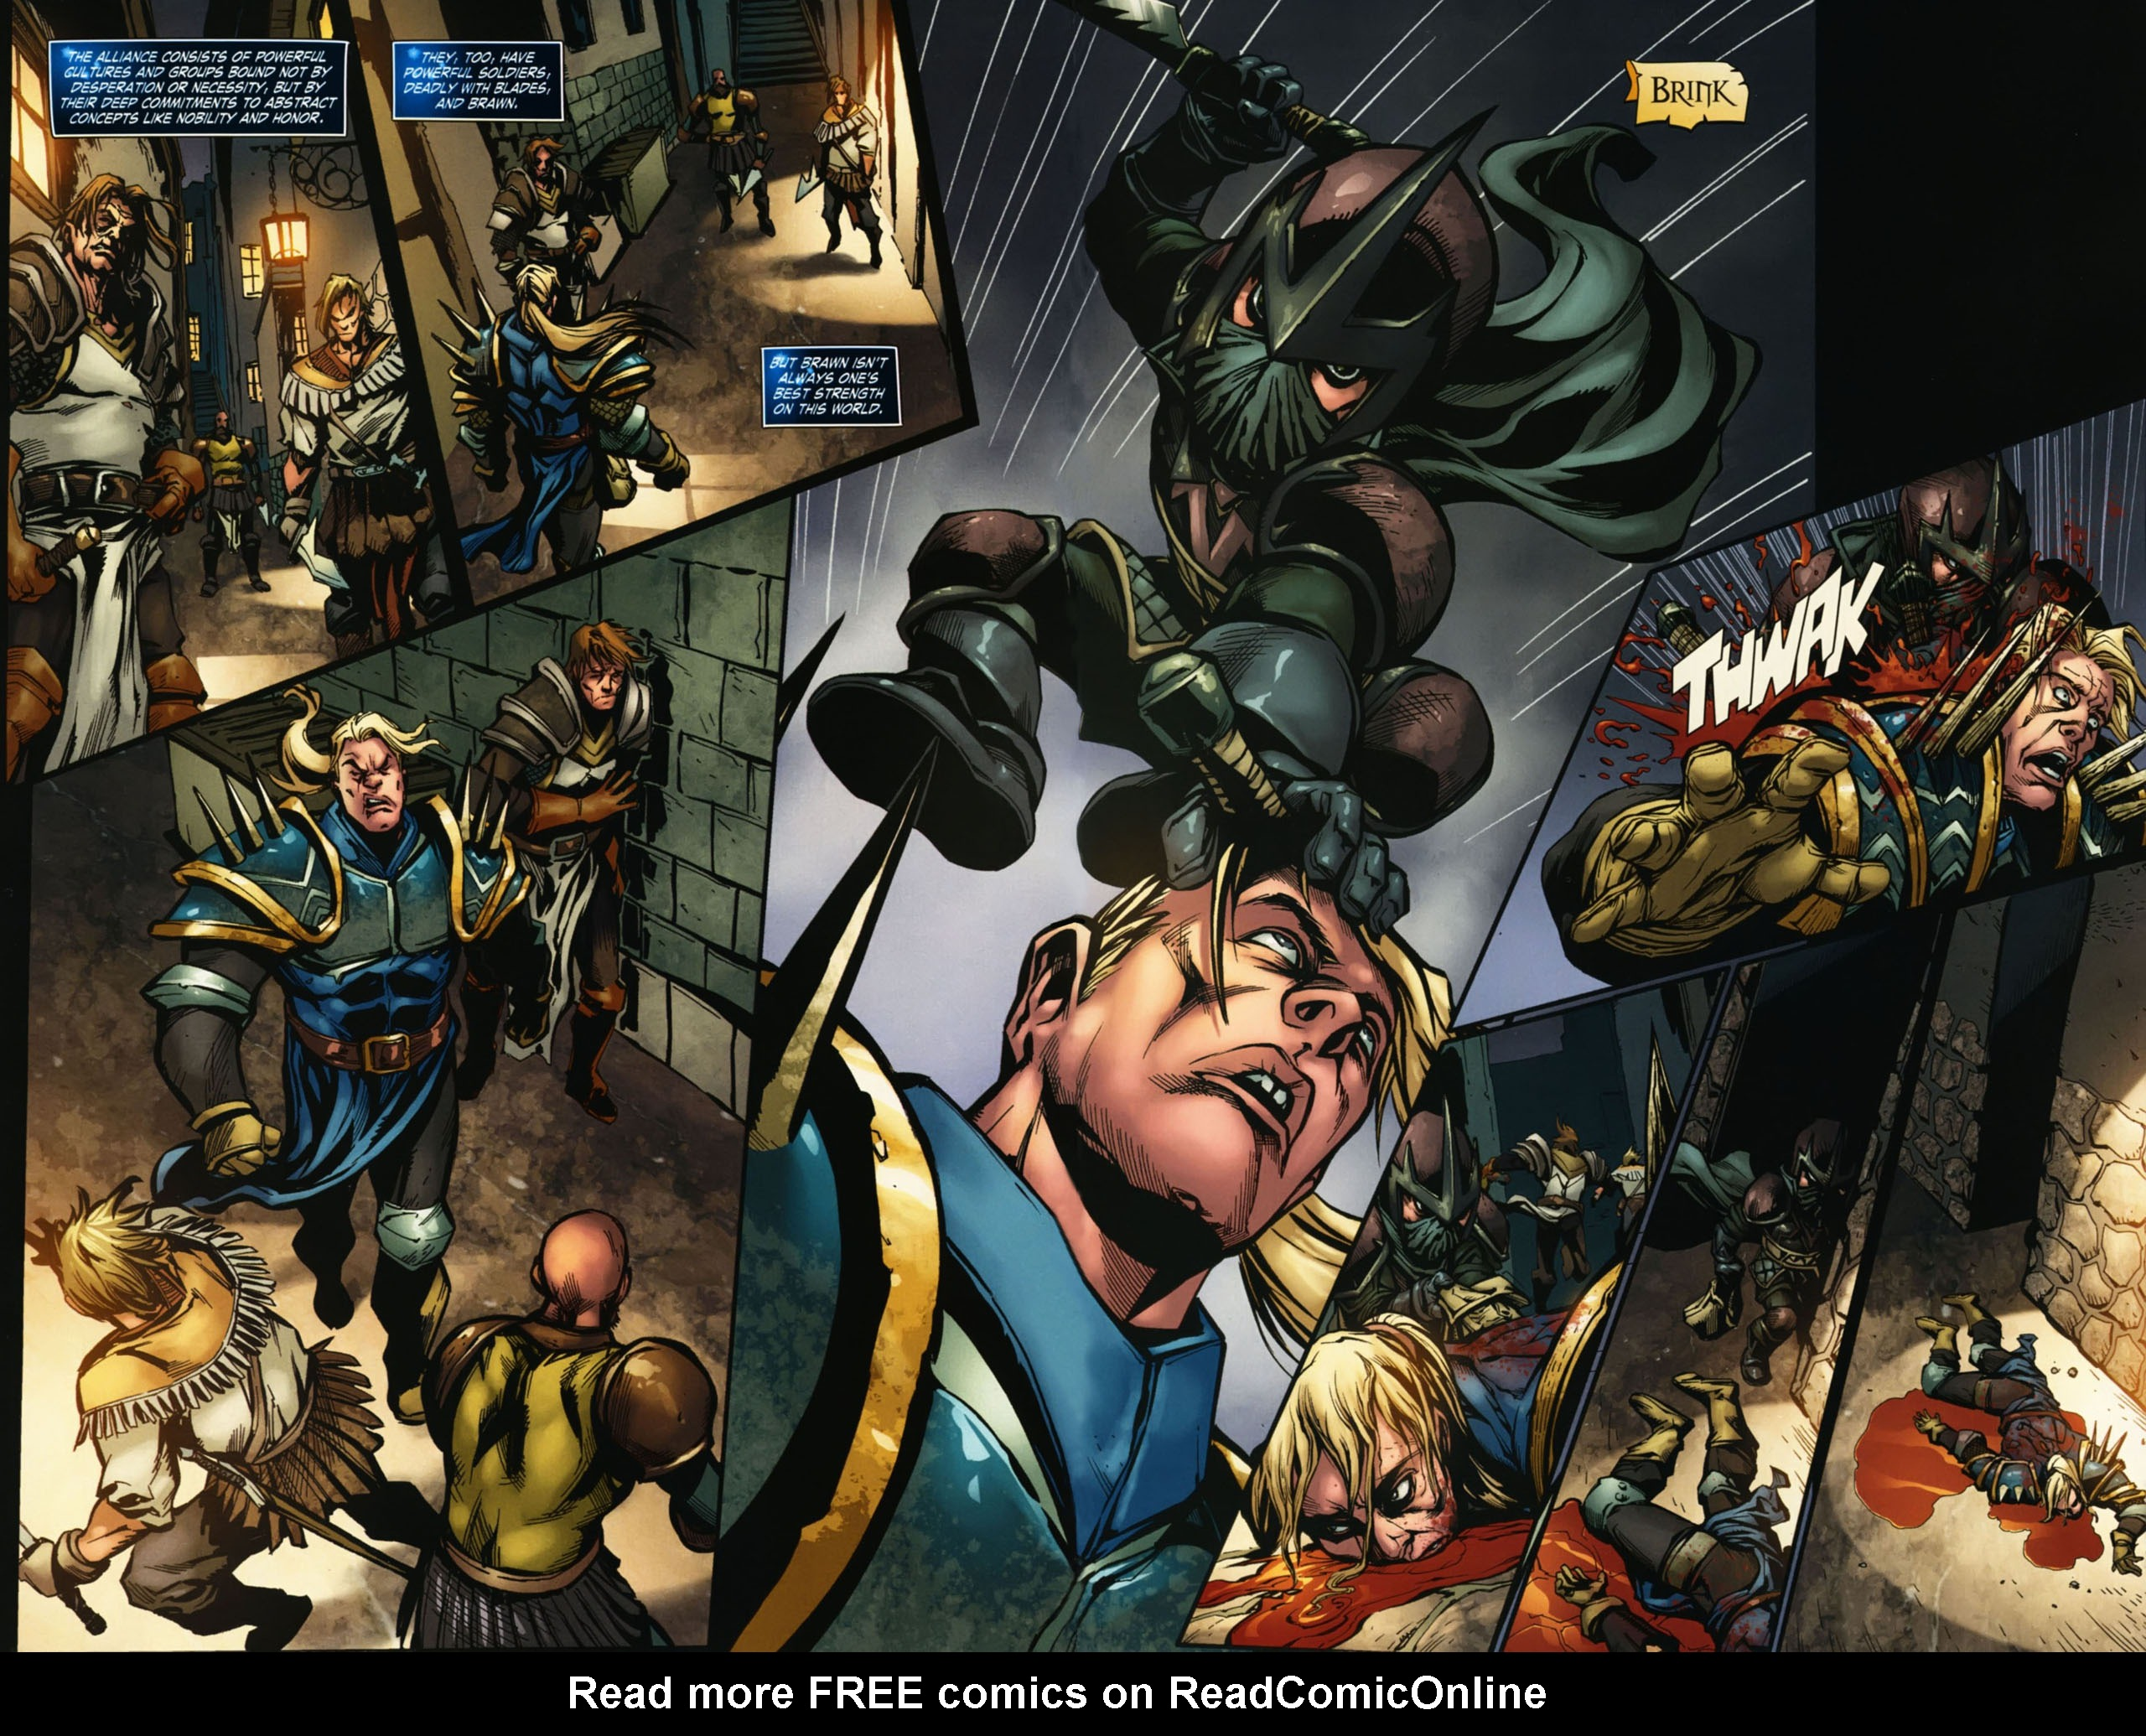 Read online World of Warcraft Special comic -  Issue # Full - 12